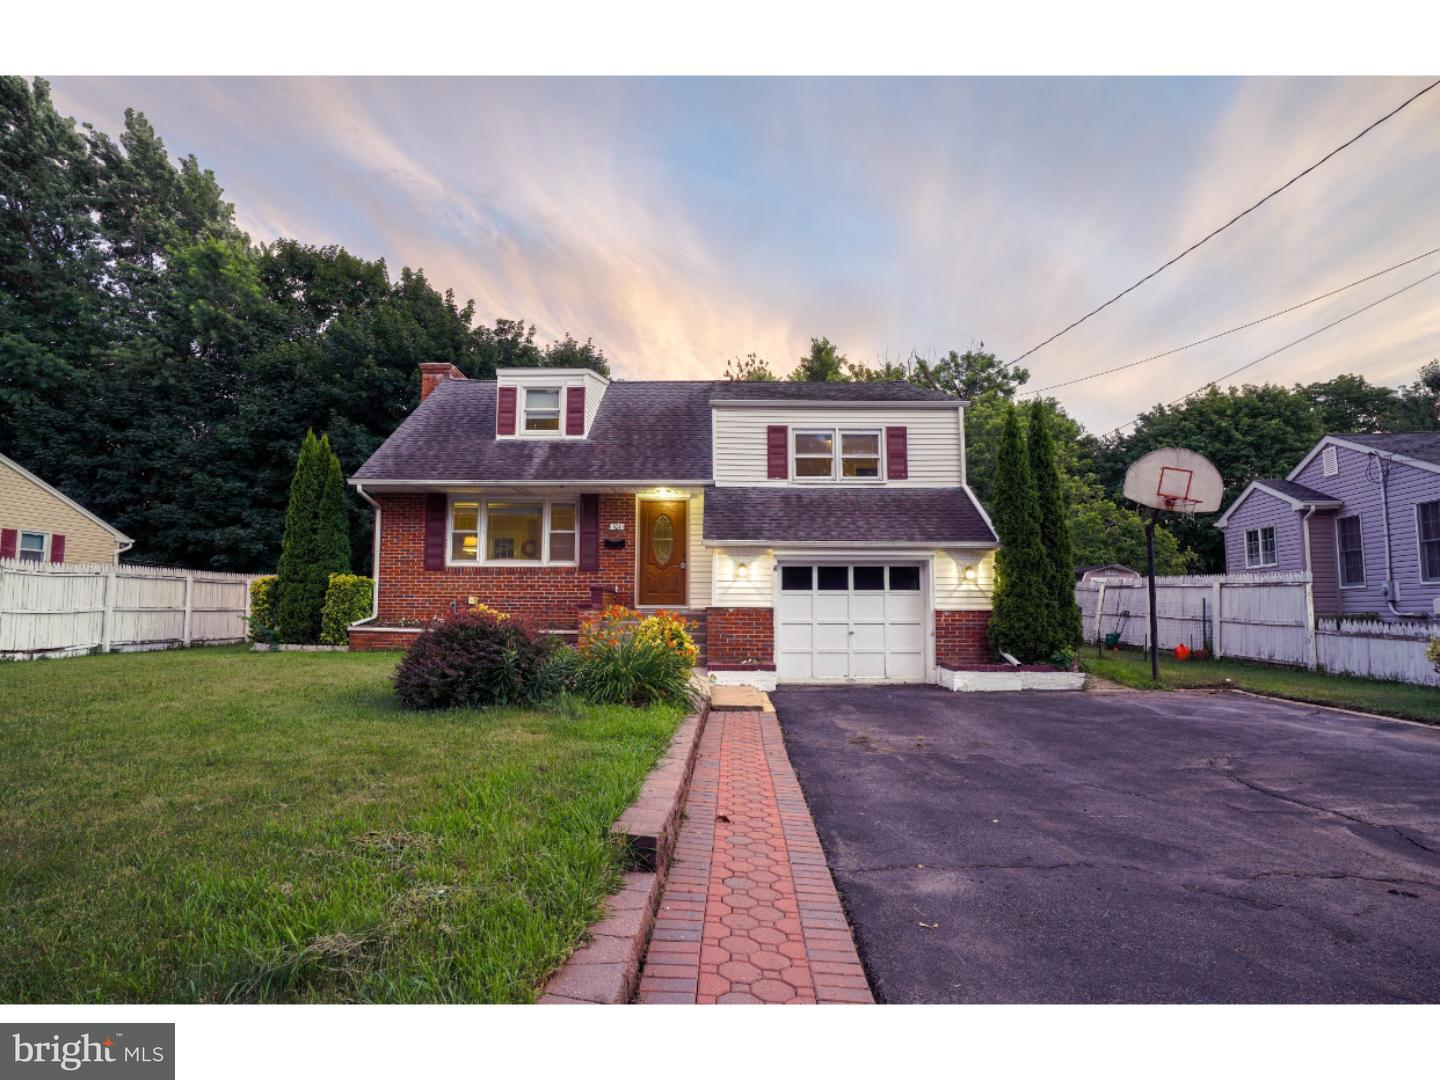 Single Family Home for Sale at 104 GILMAN Place Hightstown, New Jersey 08520 United StatesMunicipality: Hightstown Borough